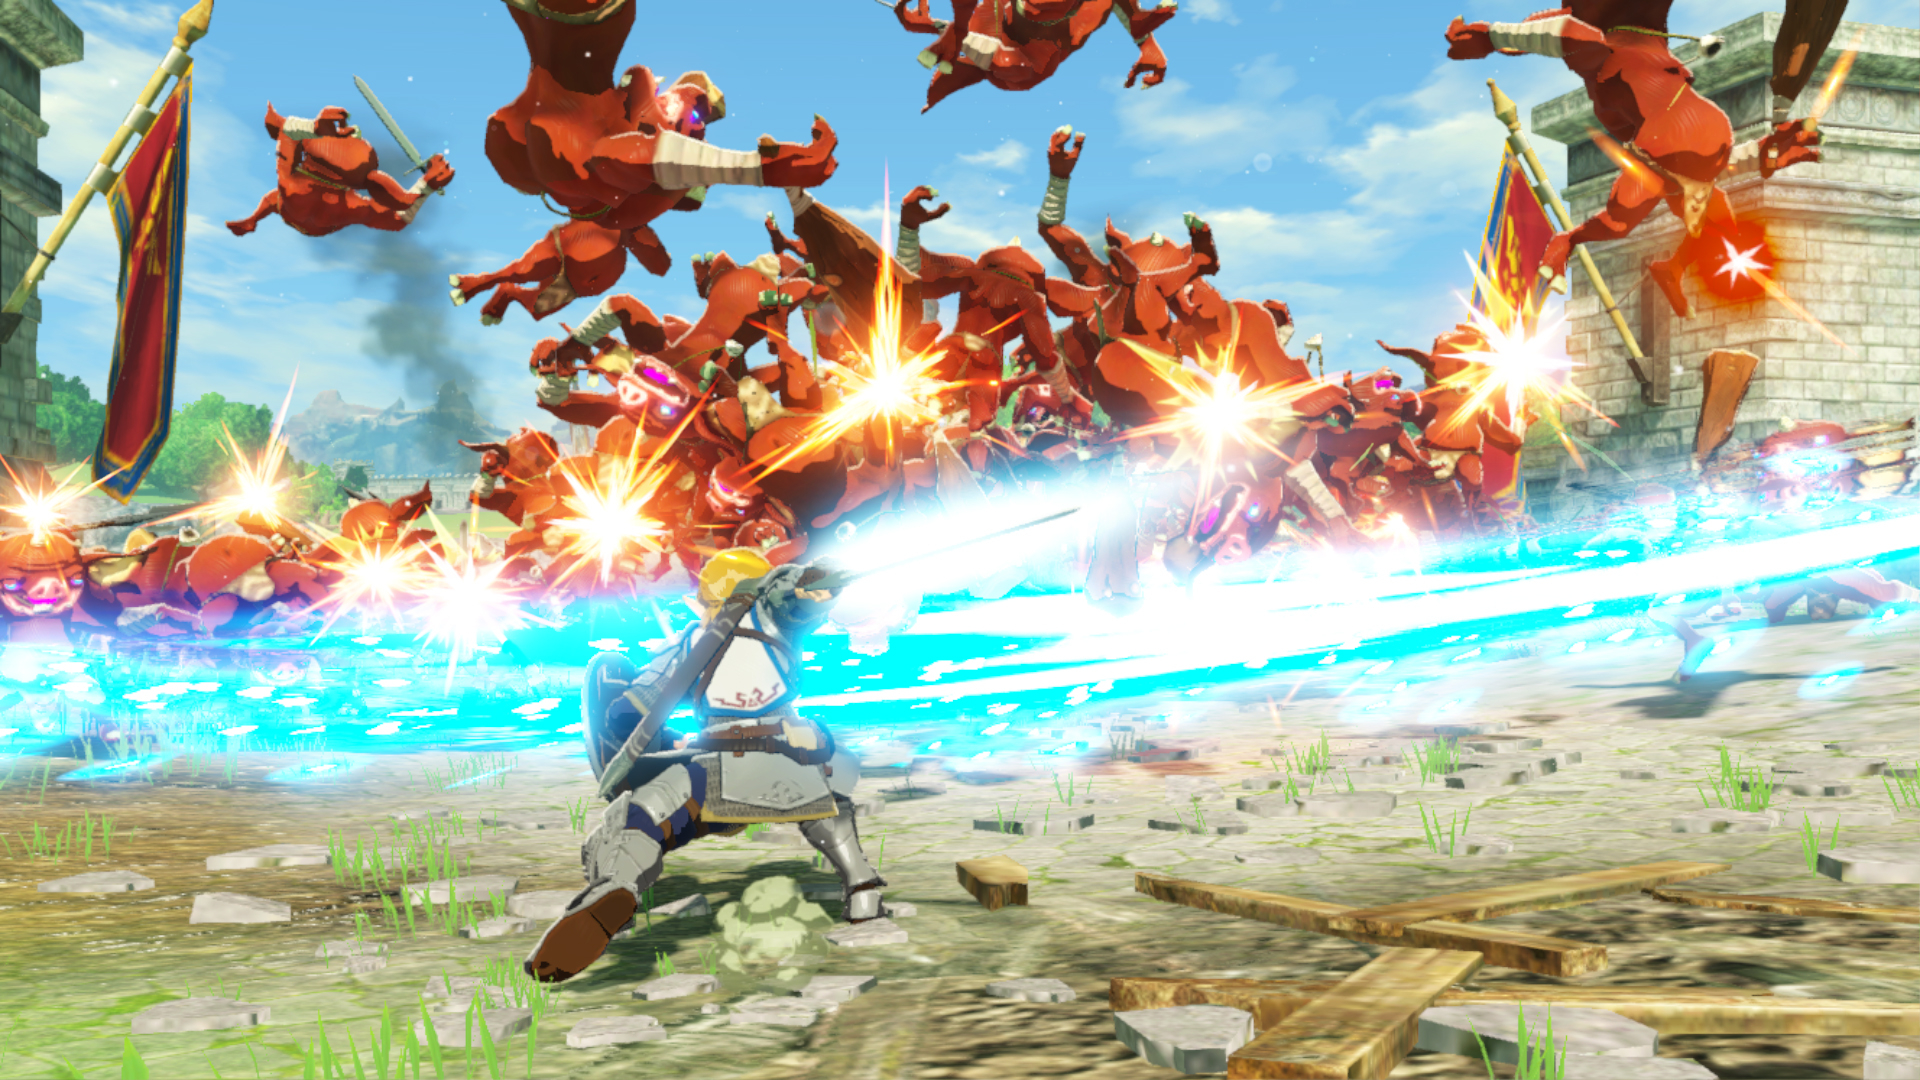 Hyrule Warriors Age of Calamity Reintroduces Our Hero Link